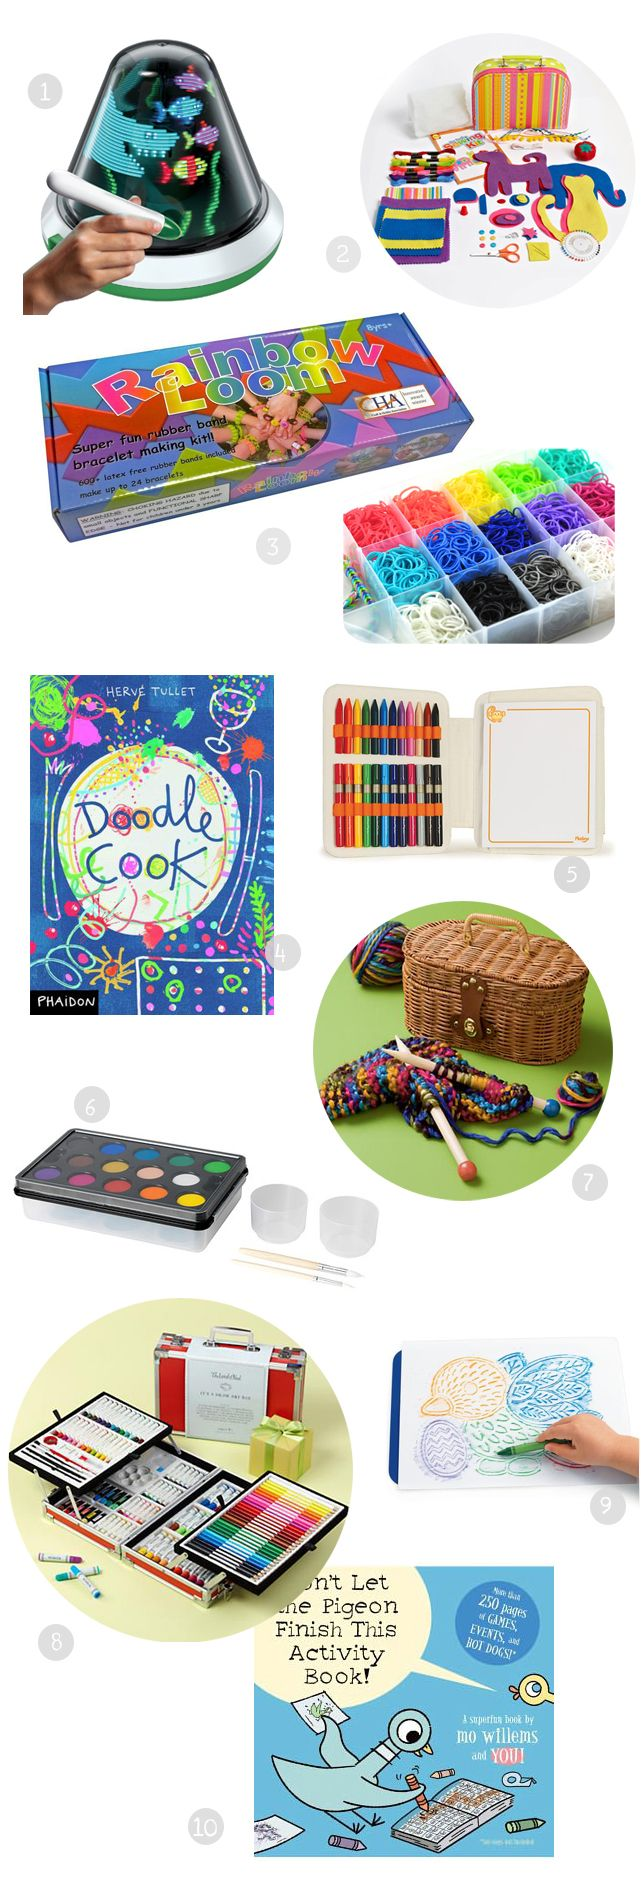 Gift guide: best art supplies for open-ended creativity - all great to have on hand for a rainy day! Detailed descriptions and age recommendations on this list.